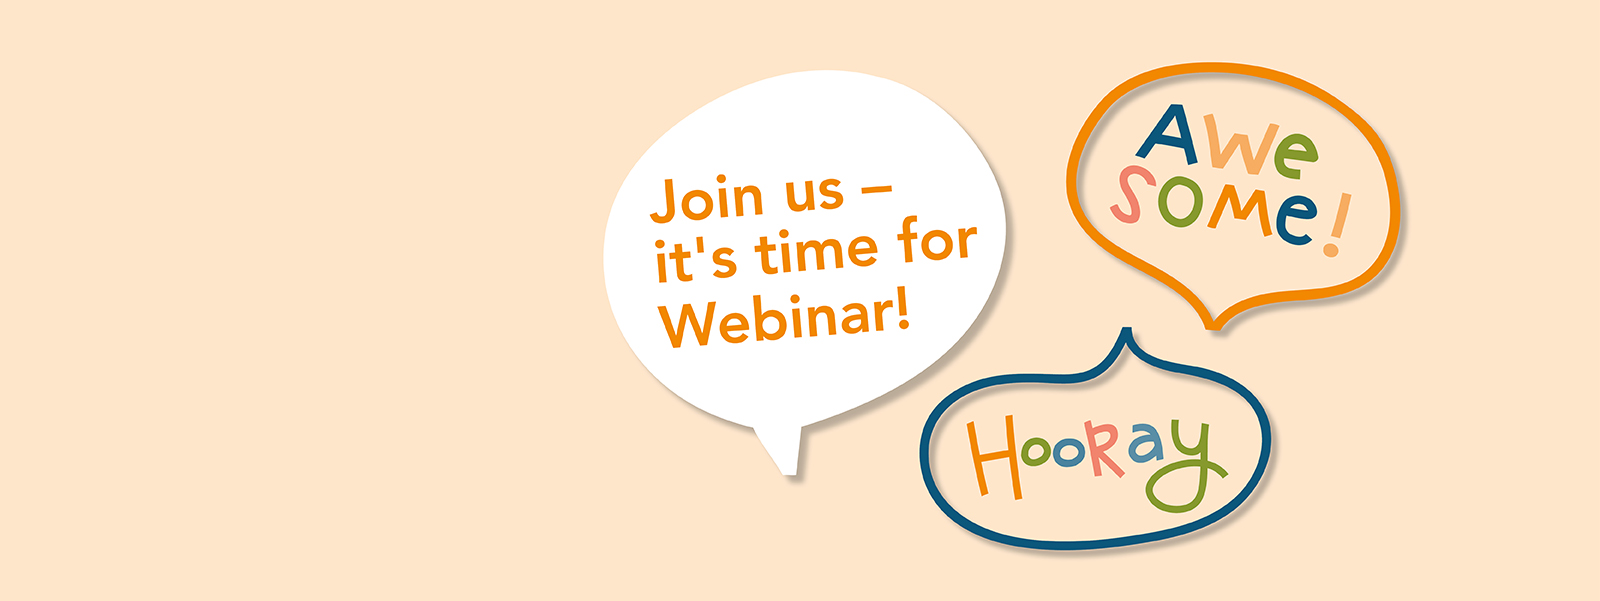 Join us at our Webinars!